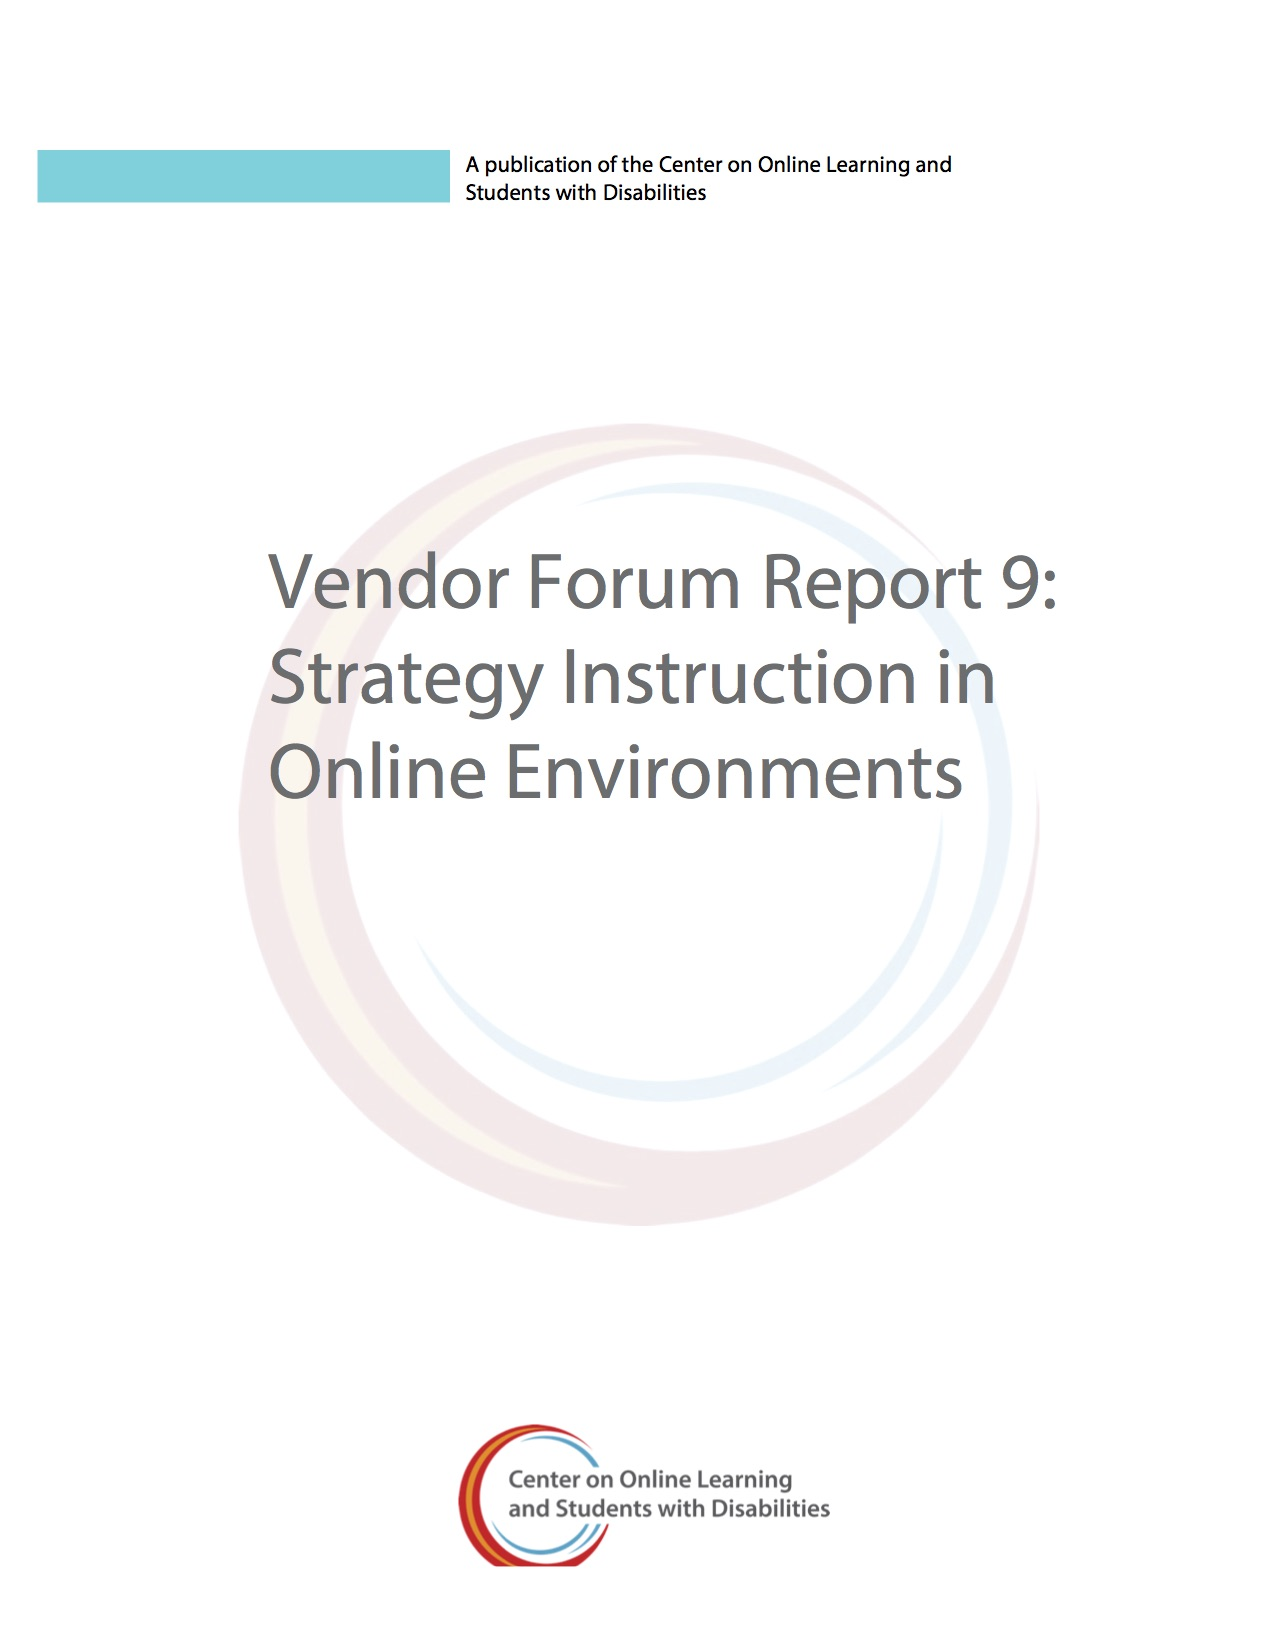 Vendor Forum Report 9: Strategy Instruction In Online Environments